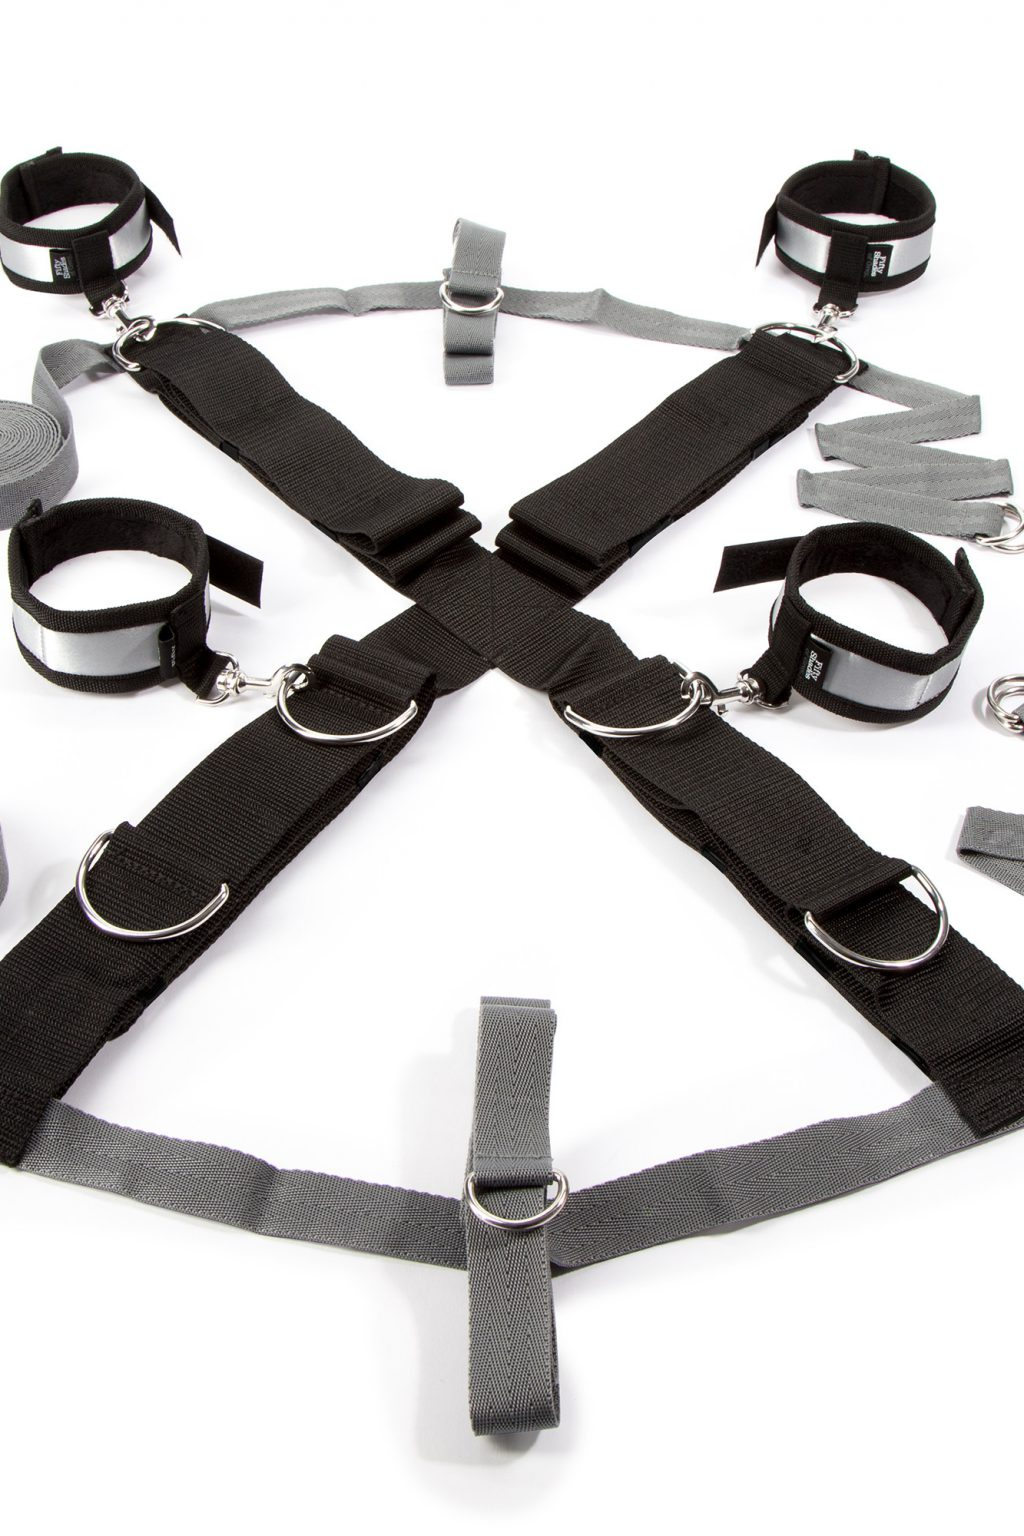 50 Shades Over The Bed Cross Restraint